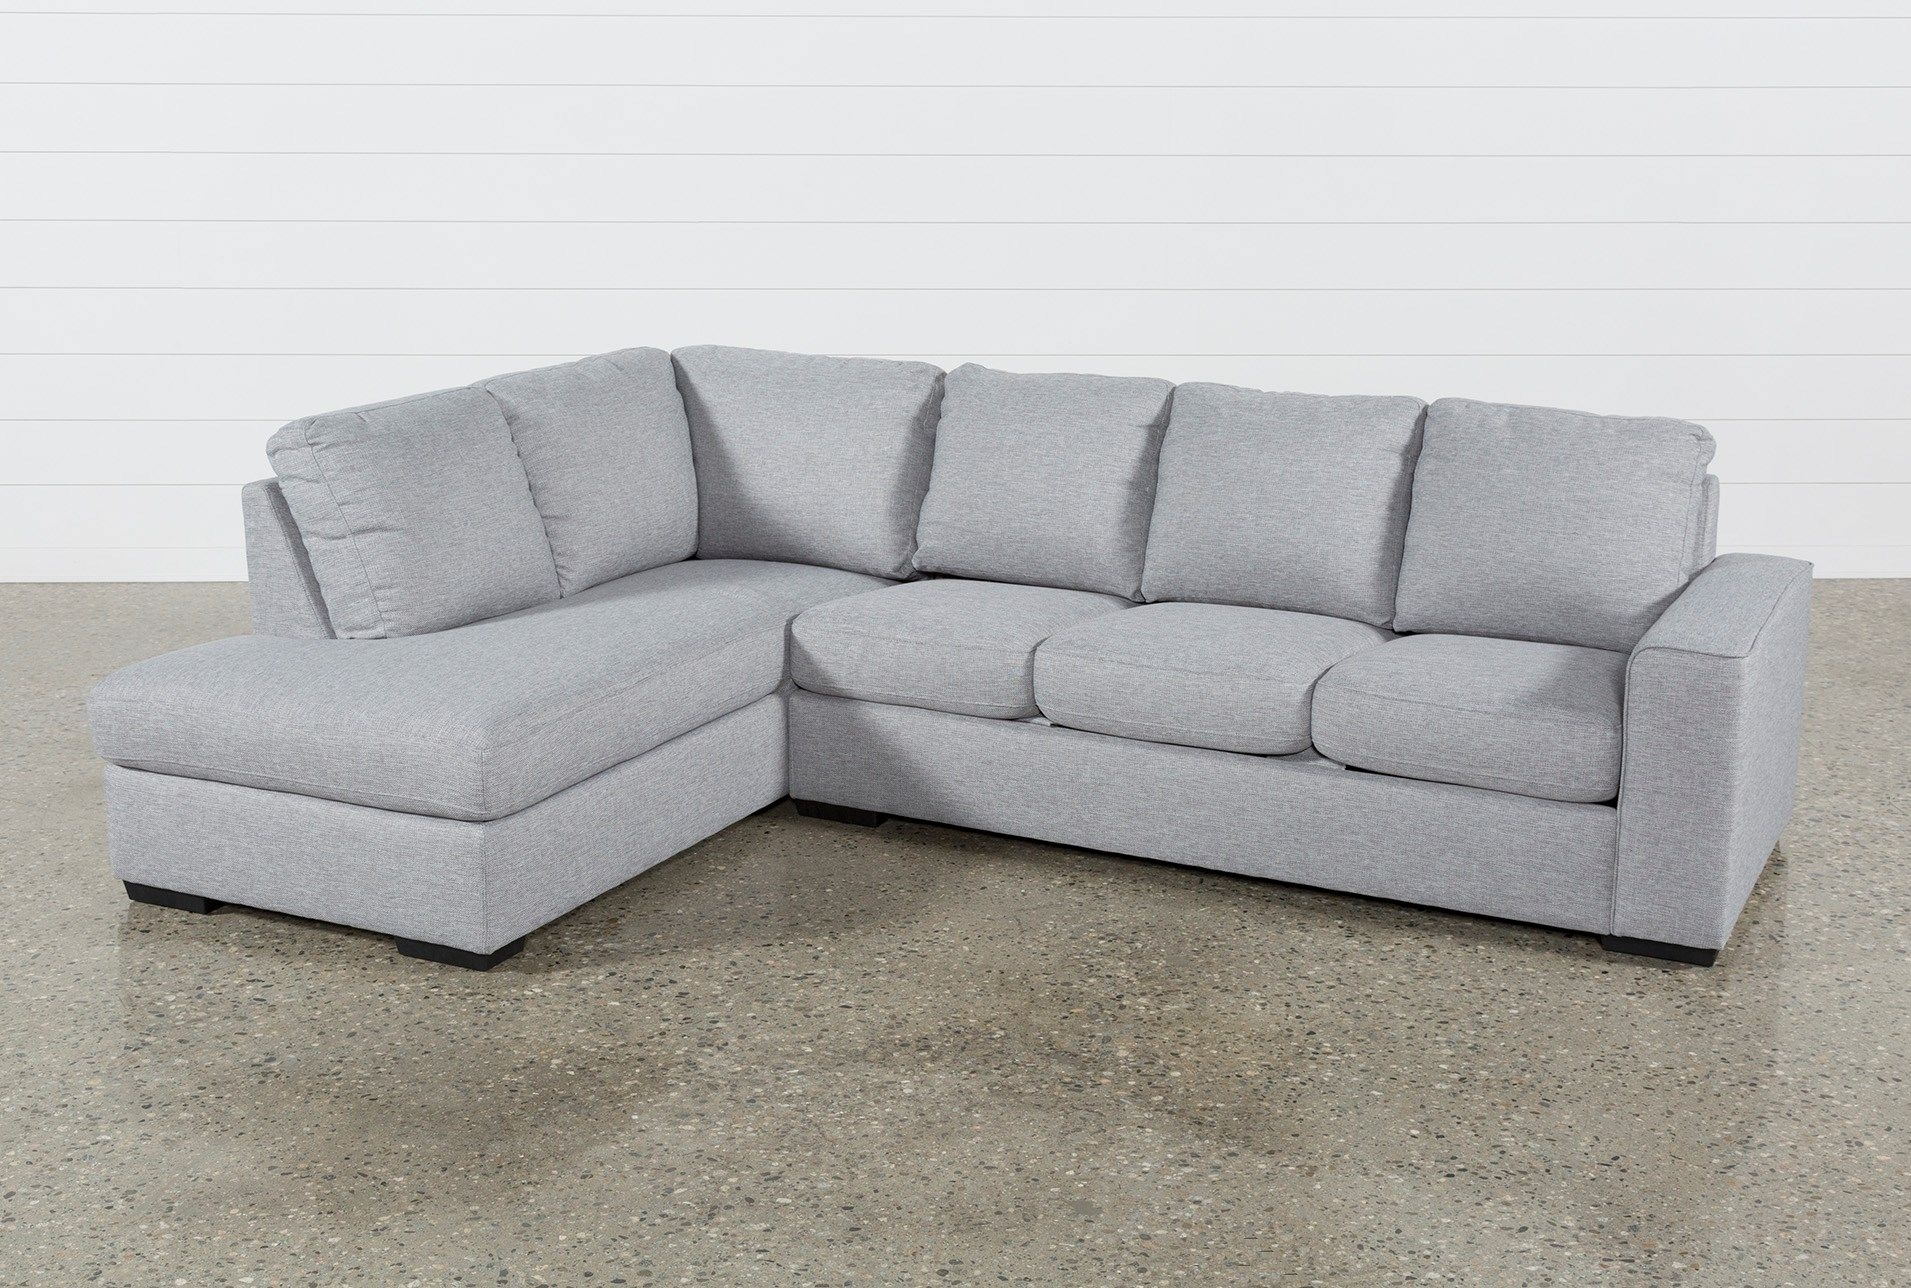 Lucy Grey 2 Piece Sectional W/laf Chaise | Tx House | Pinterest intended for Lucy Grey 2 Piece Sleeper Sectionals With Raf Chaise (Image 21 of 30)